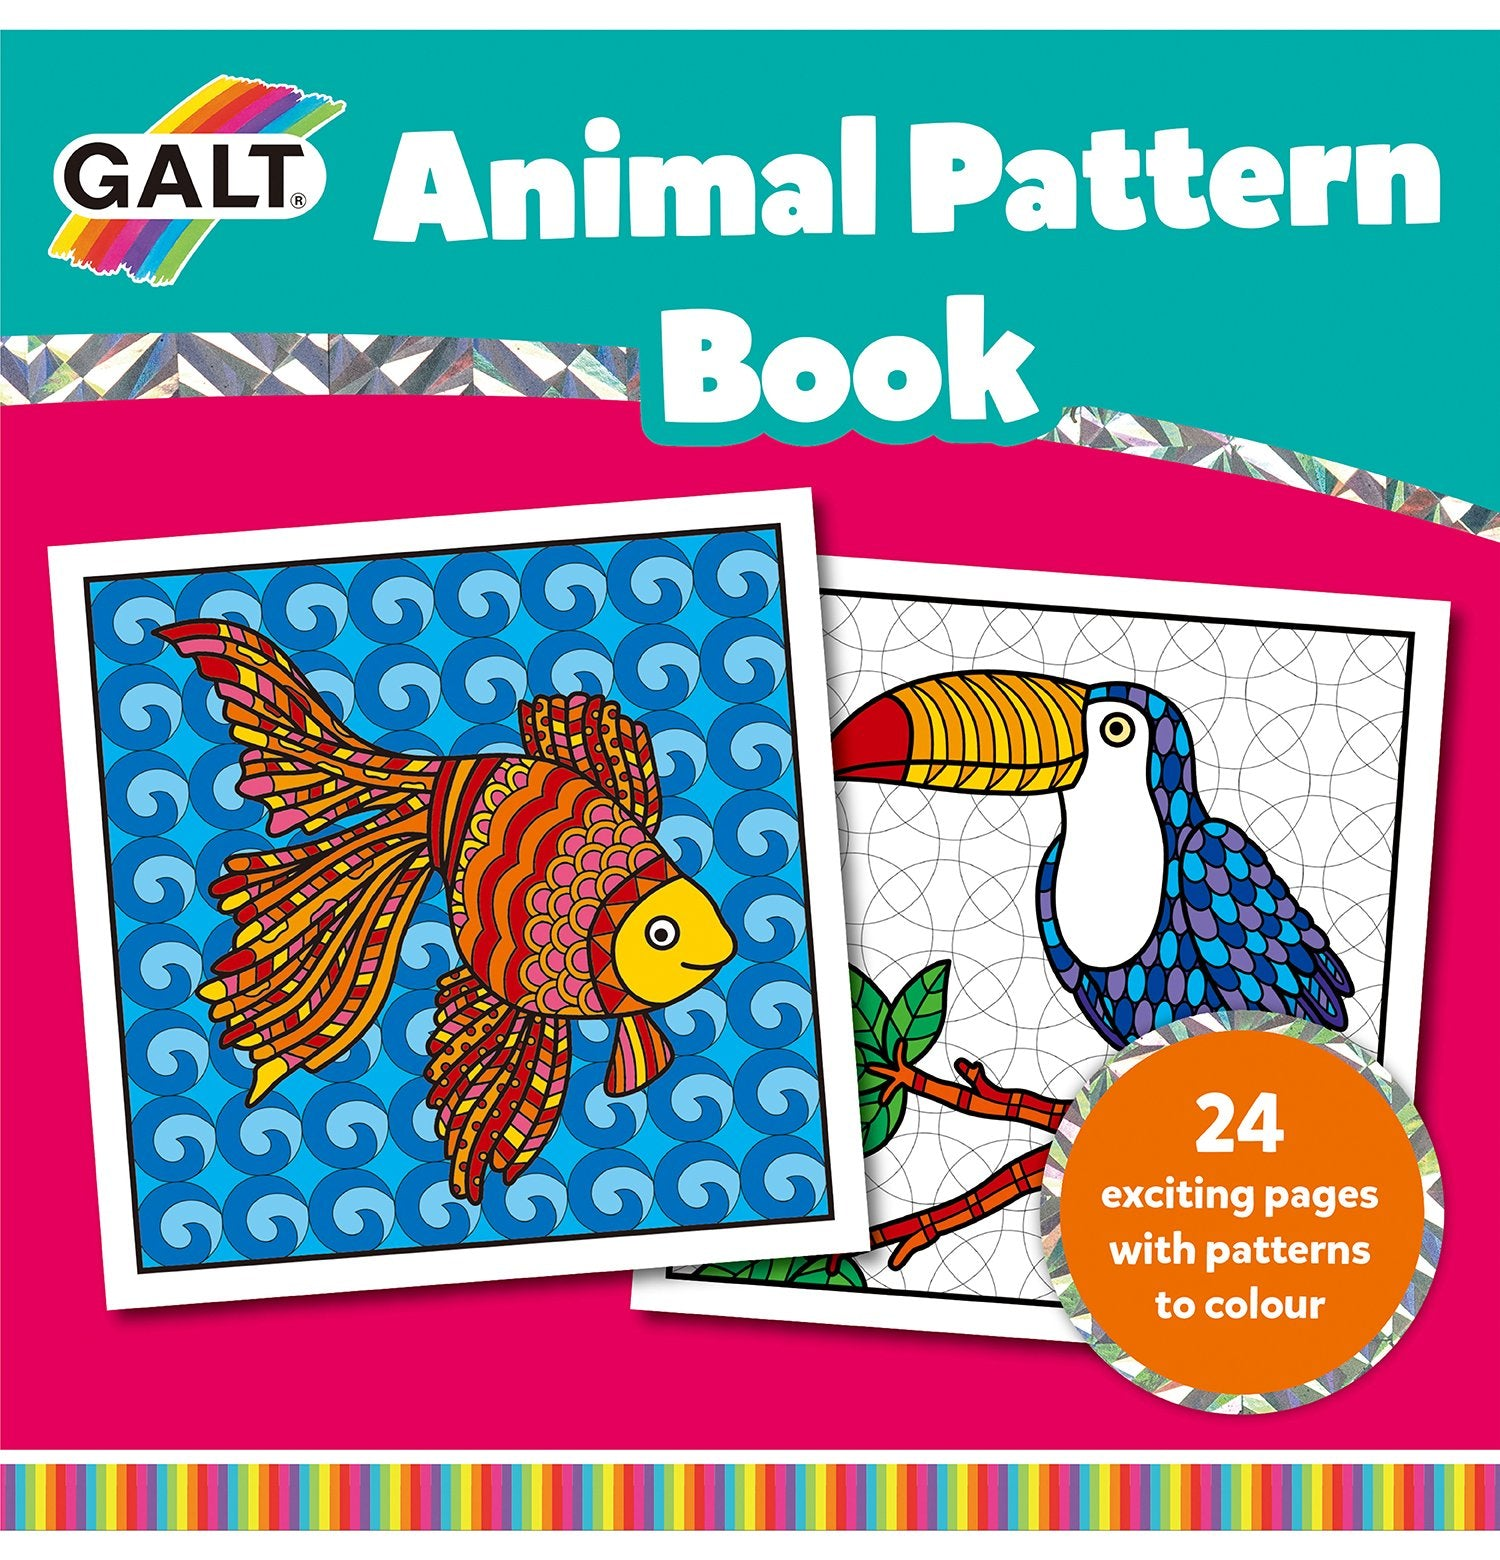 Animal Pattern Book - Galt